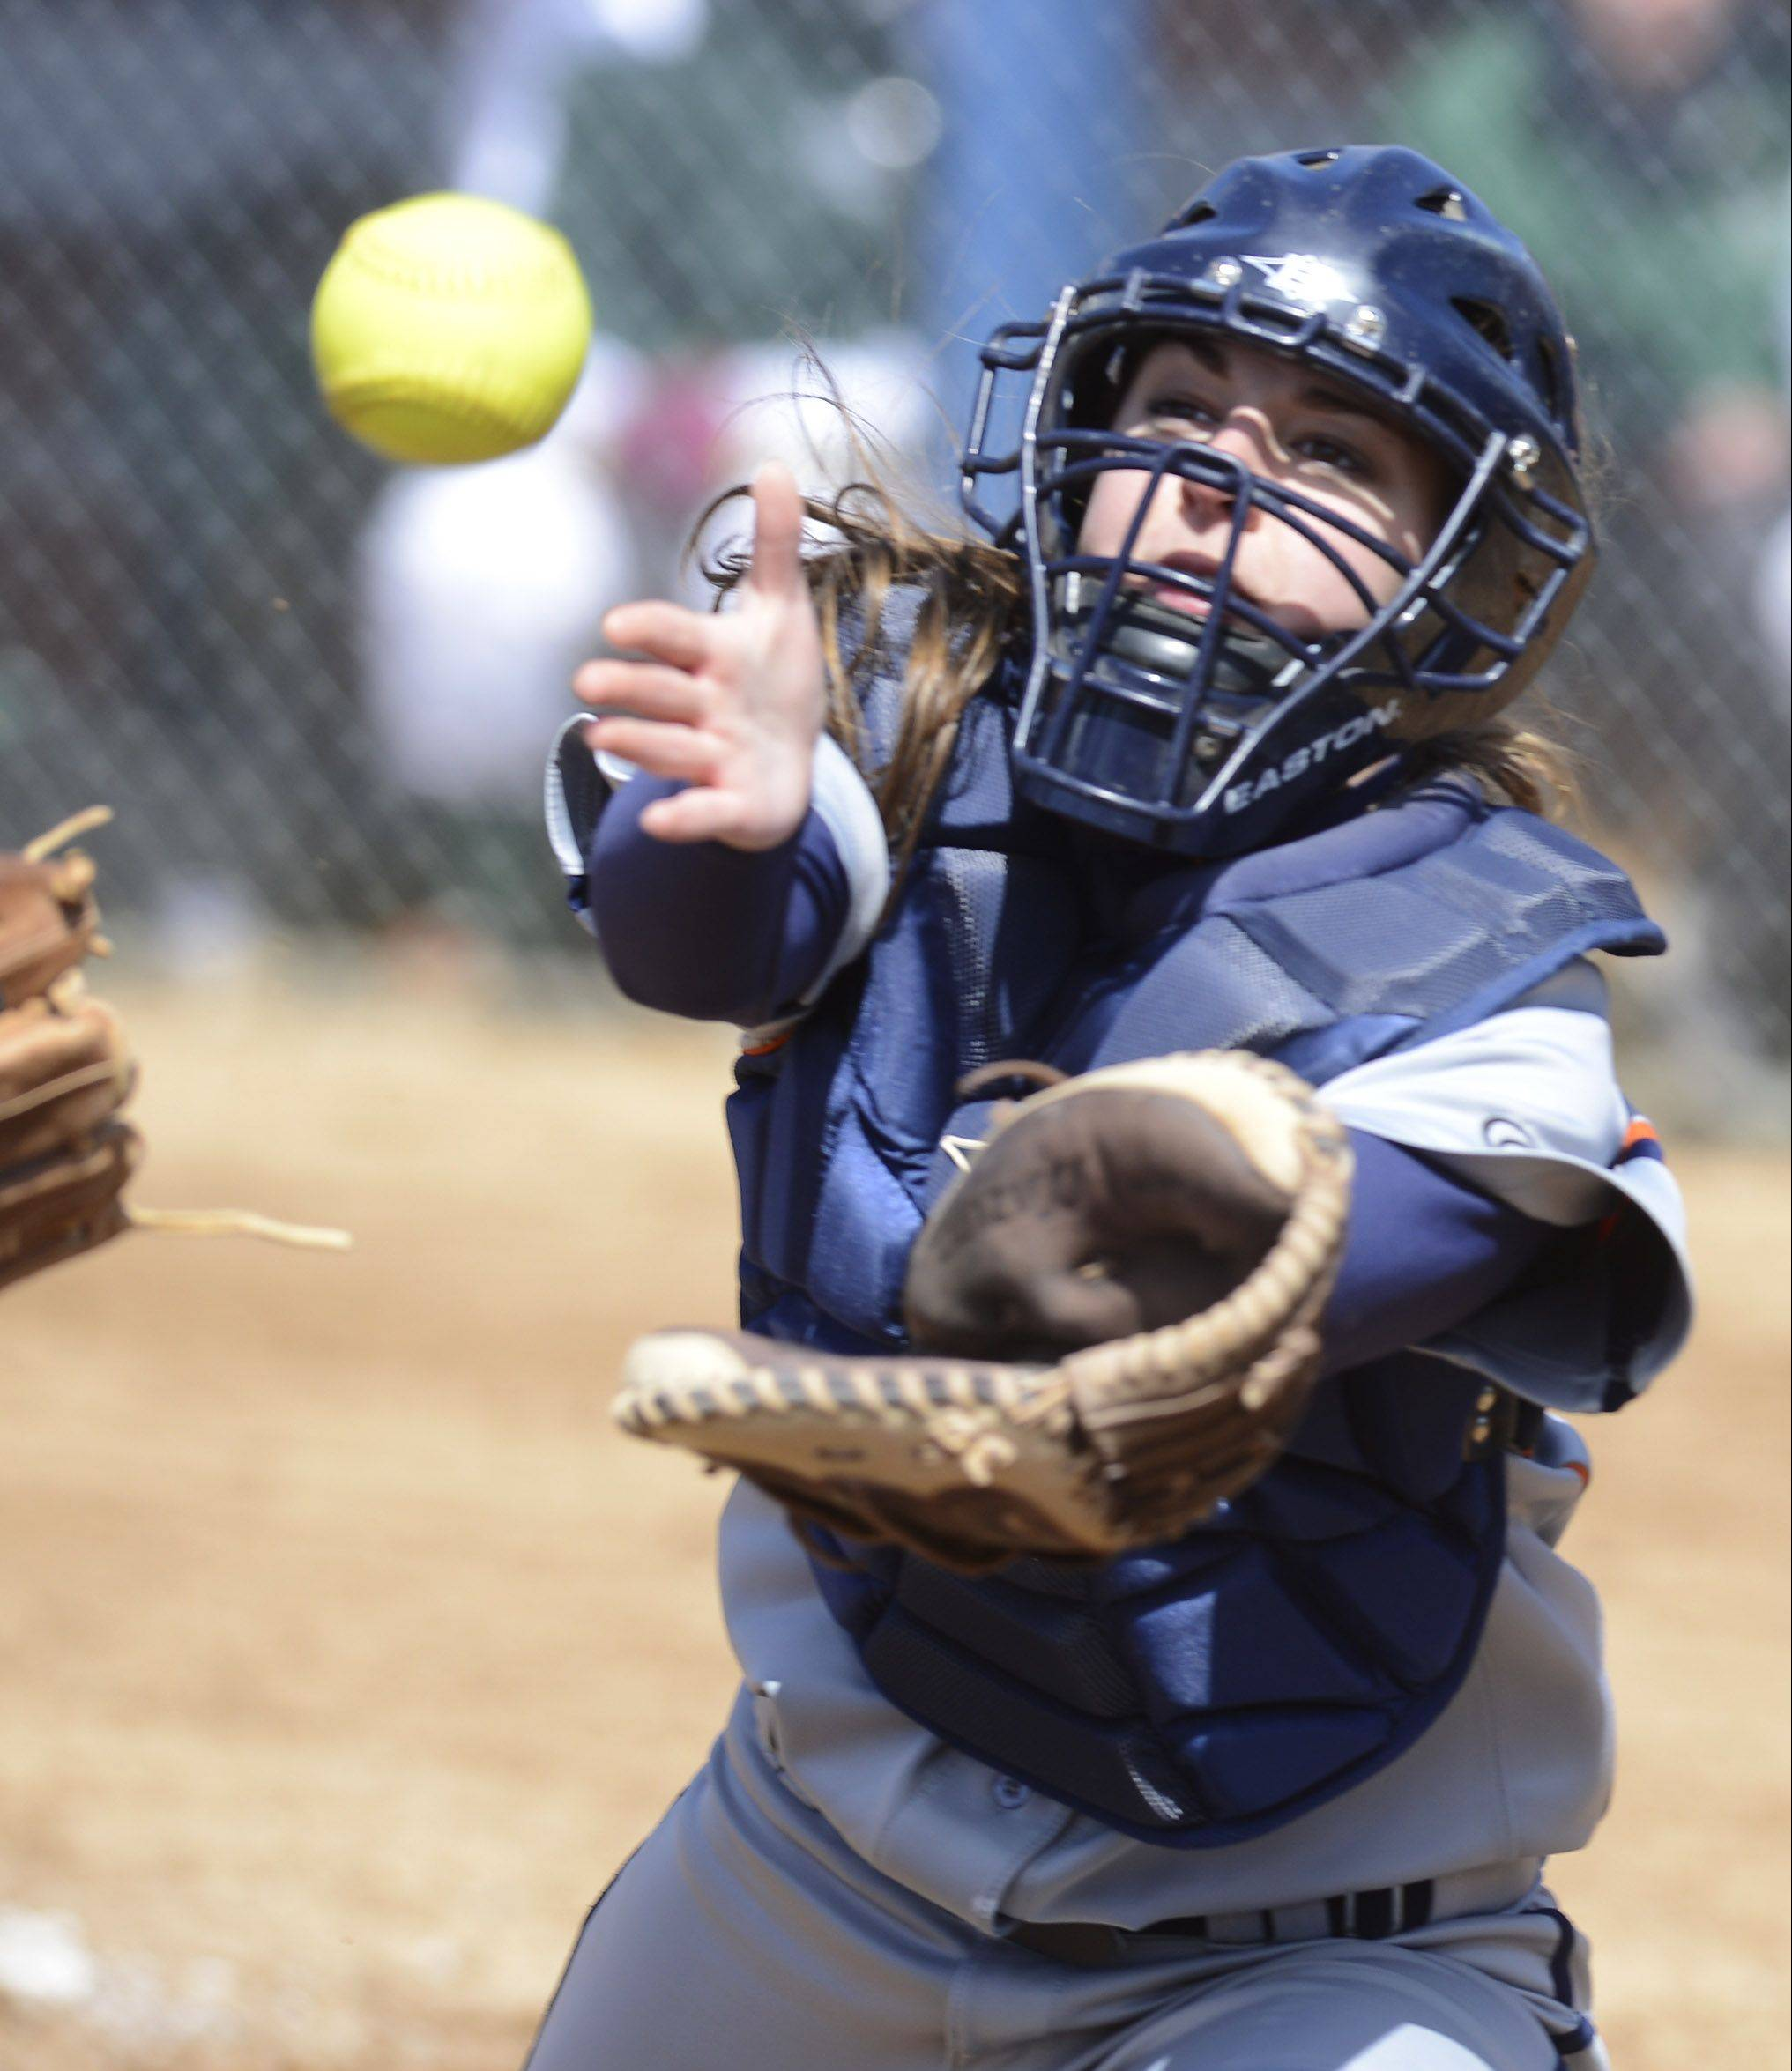 Buffalo Grove catcher Amanda Salzman closes in on a foul pop off an Elk Grove bunt attempt that wound up being caught by third baseman Erin Barton Saturday.